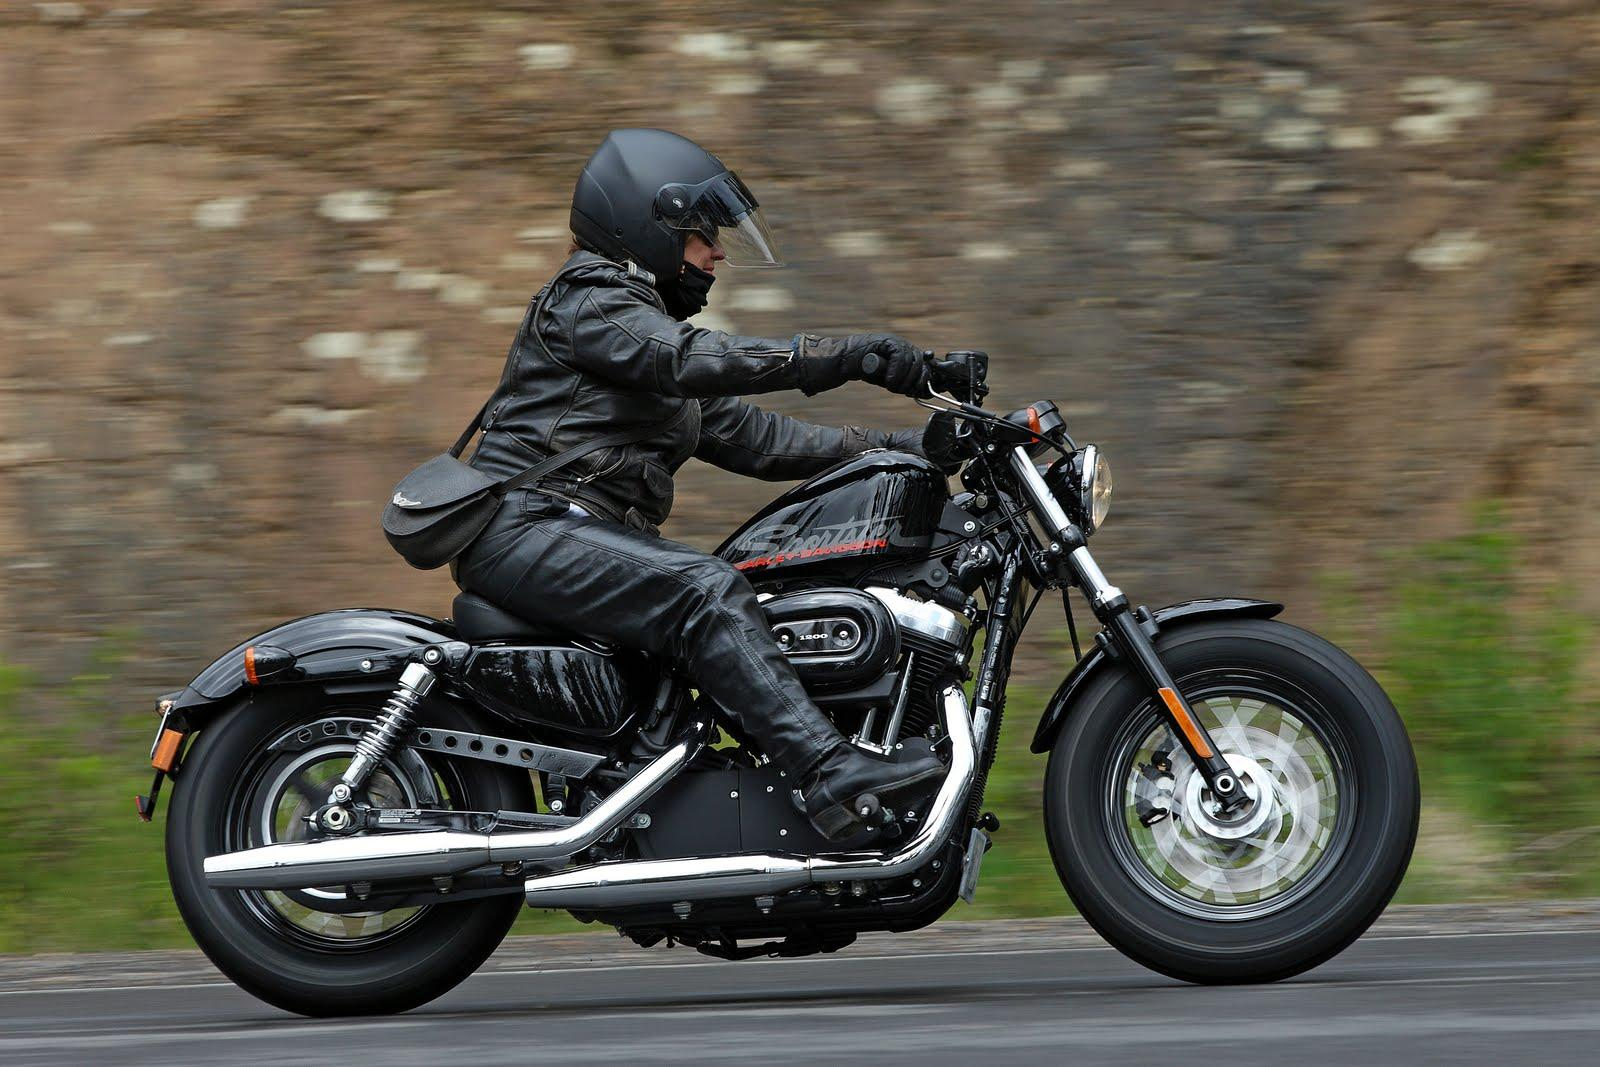 harley davidson harley davidson xl1200x forty eight moto zombdrive com. Black Bedroom Furniture Sets. Home Design Ideas